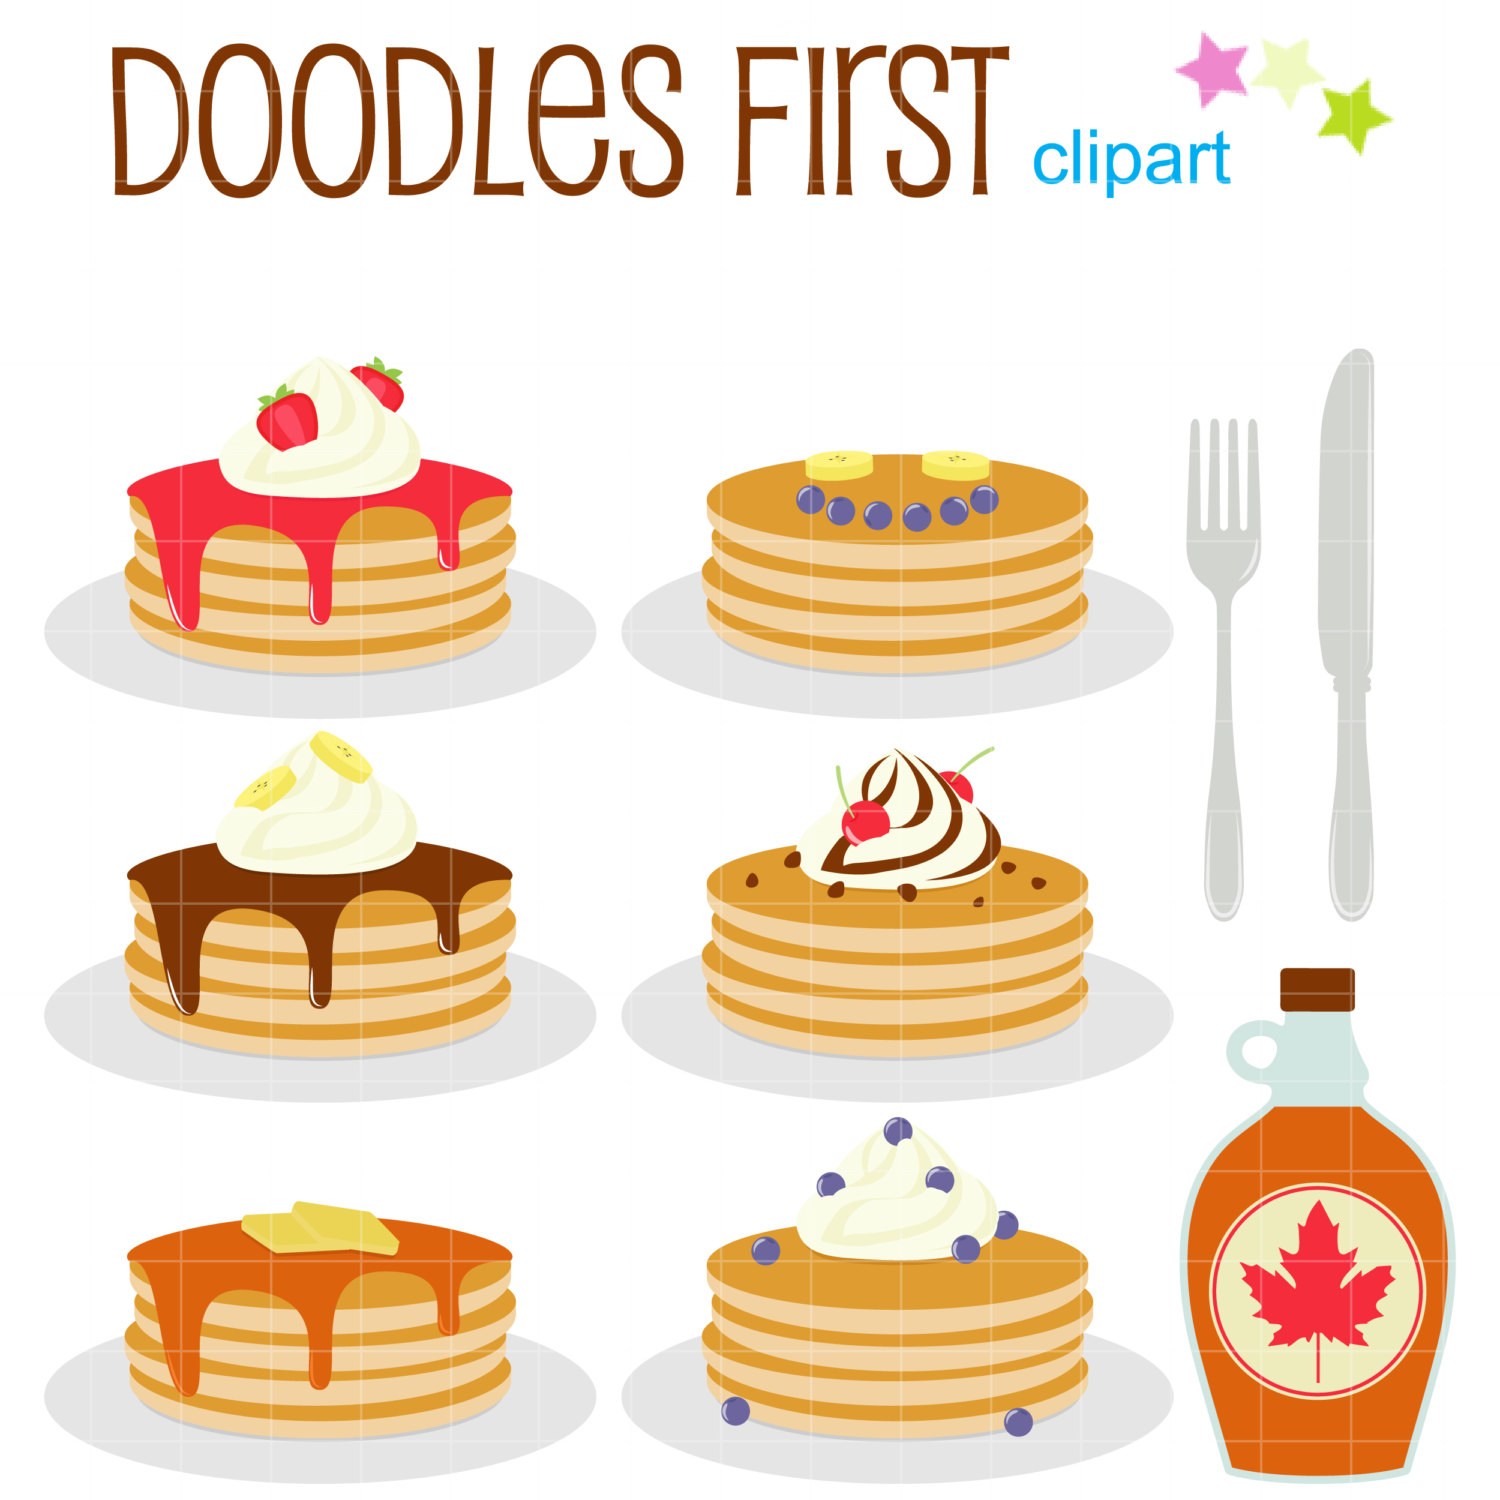 Free pancakes cliparts candle. Waffle clipart pancake party